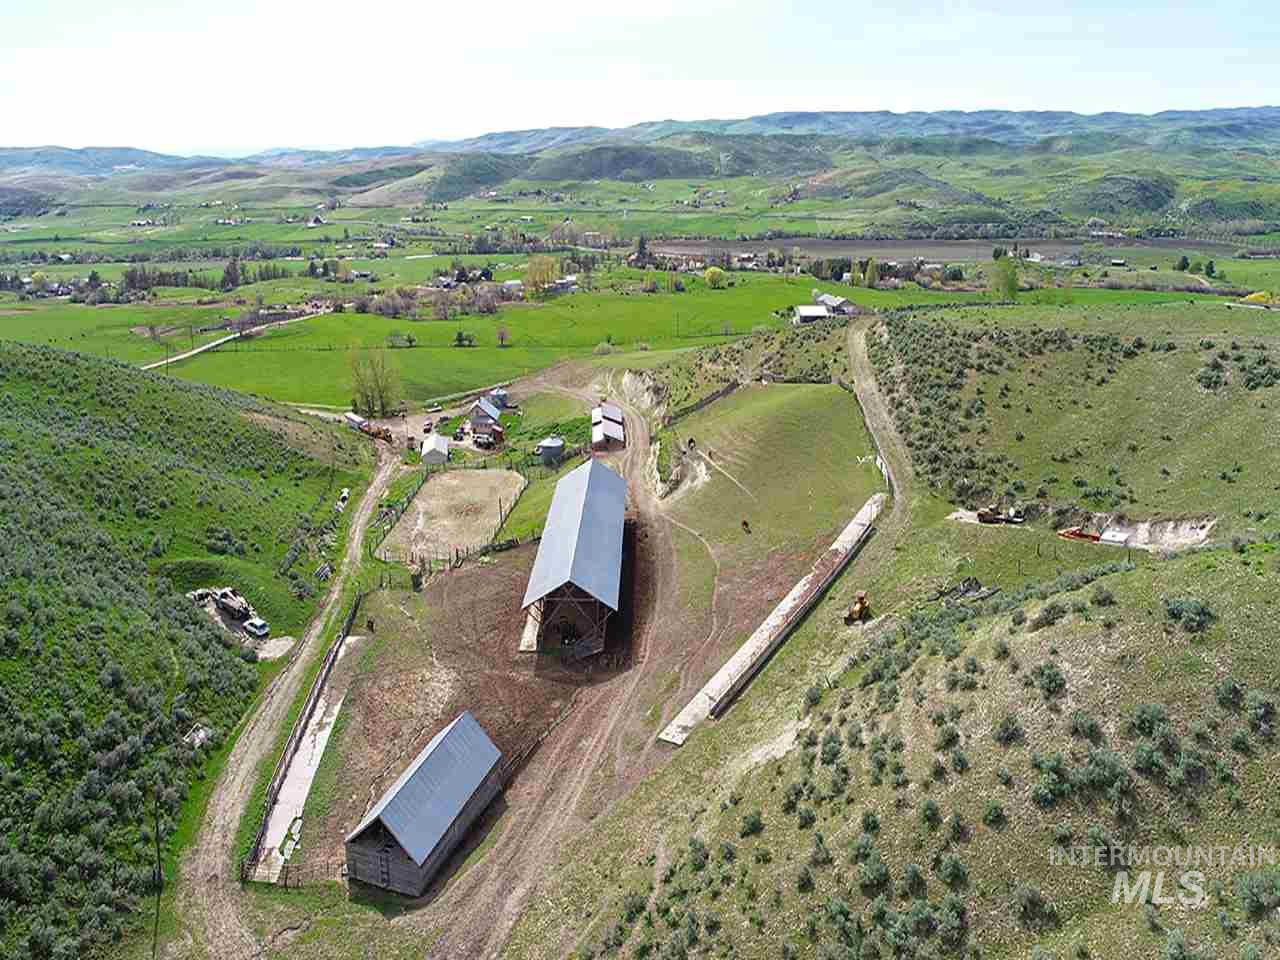 1860 Cemetery, Weiser, Idaho 83672, 3 Bedrooms, 2 Bathrooms, Farm & Ranch For Sale, Price $900,000, 98727012